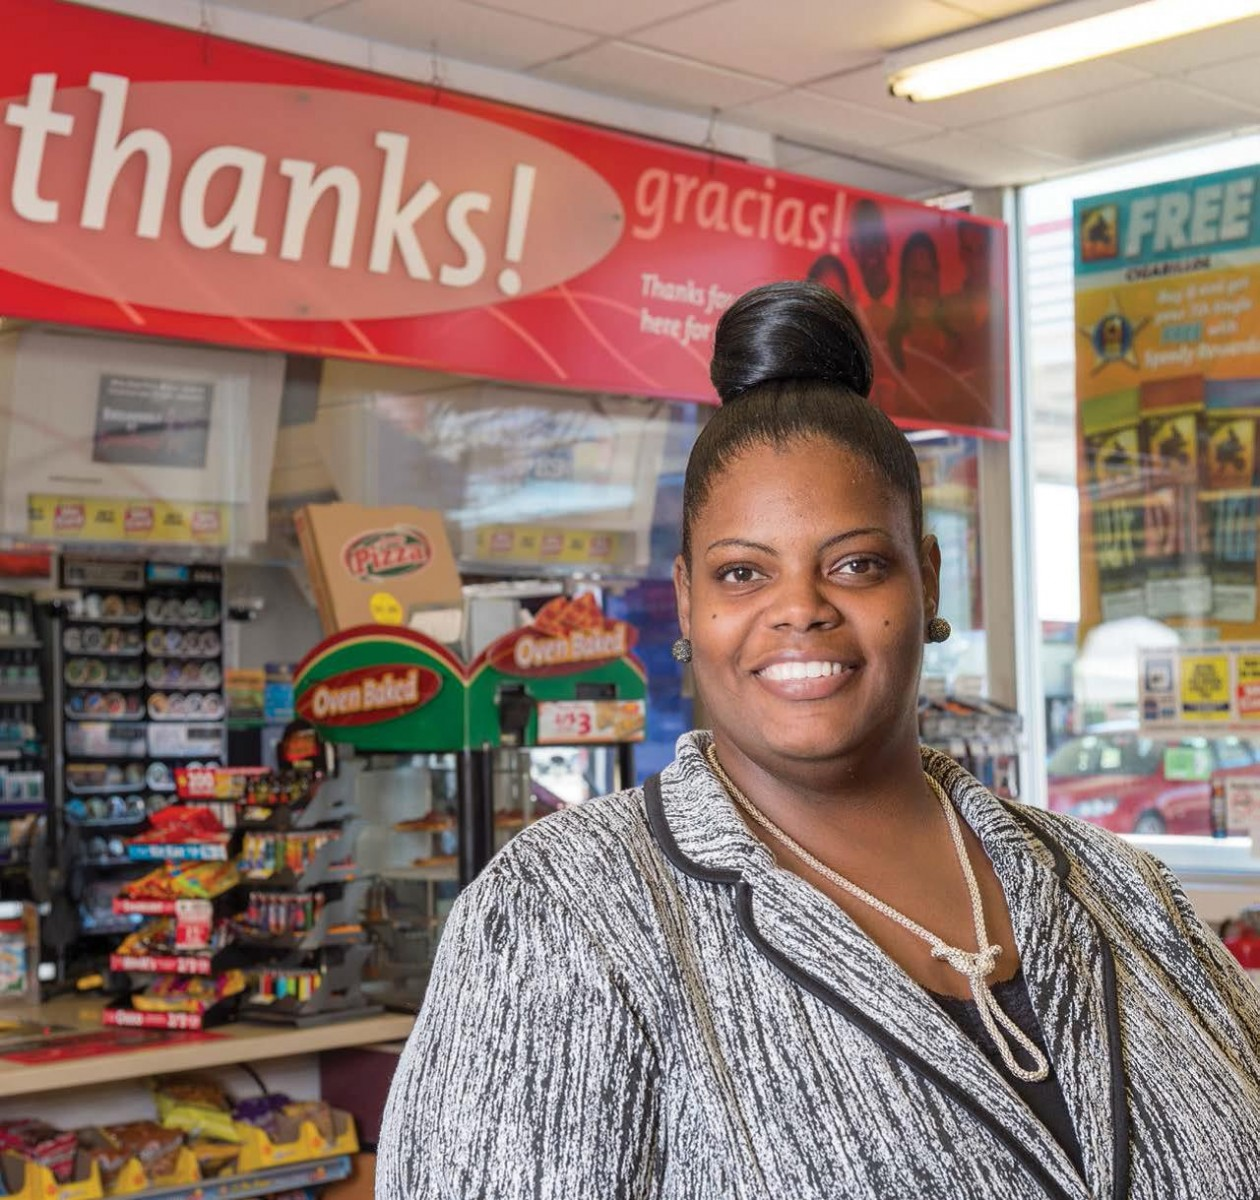 Speedway Recruiter Geritha Courts started her career as a part-time customer service representative. Her talent and drive opened up a variety of options.